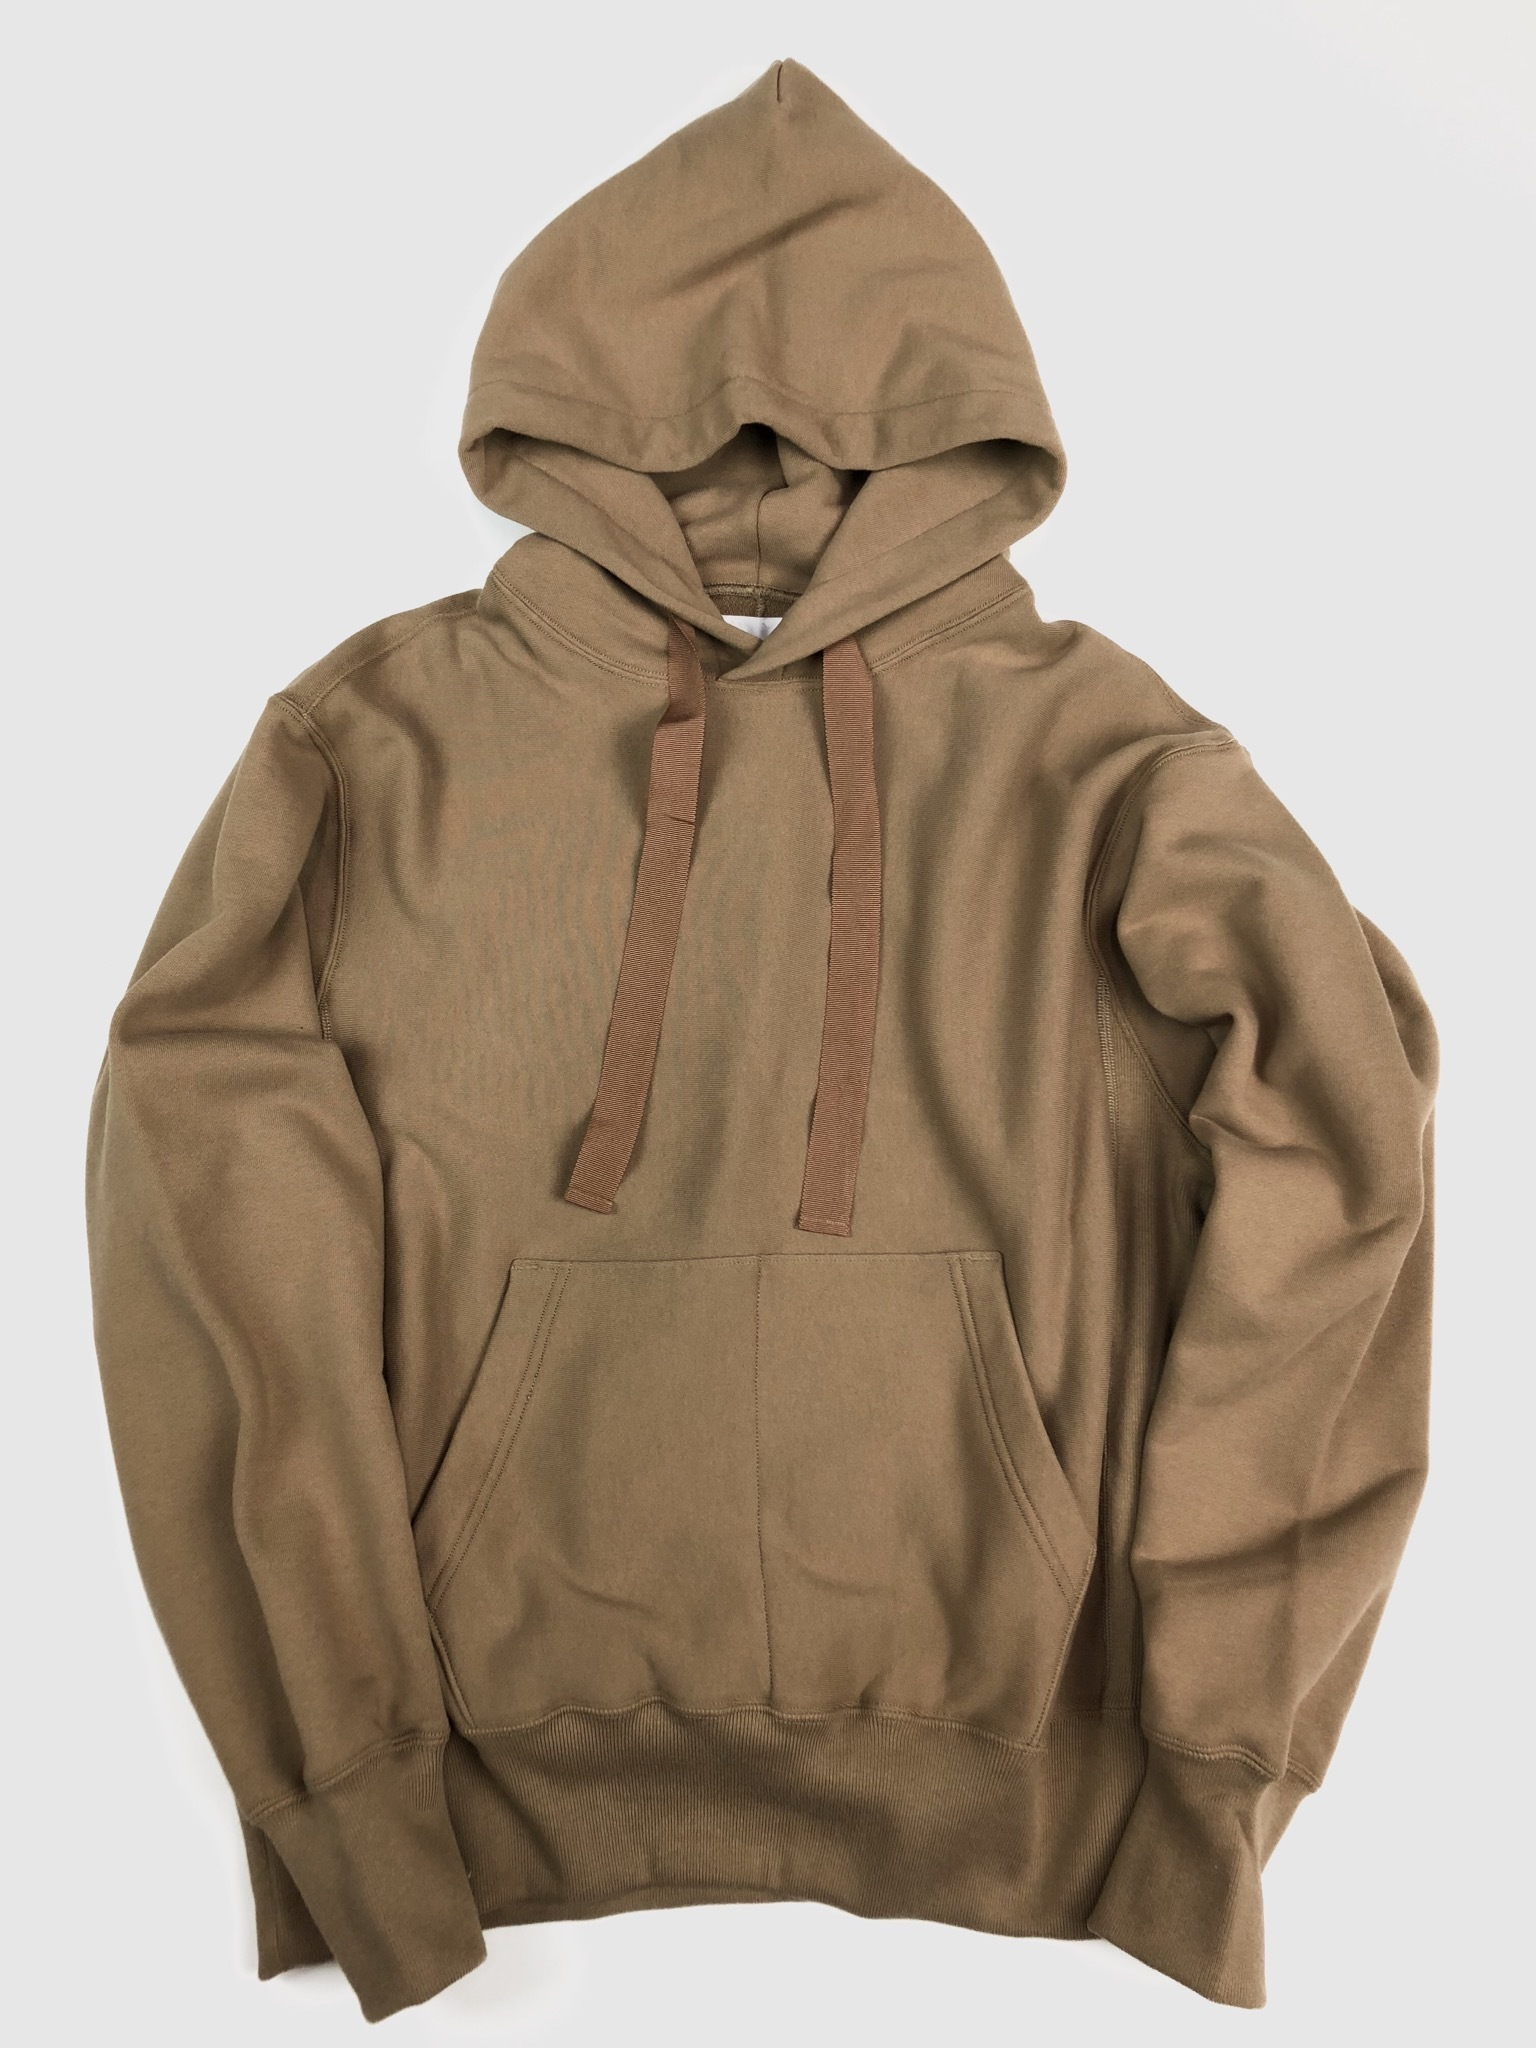 【JOHN MASON SMITH】PULL OVER HOODIE